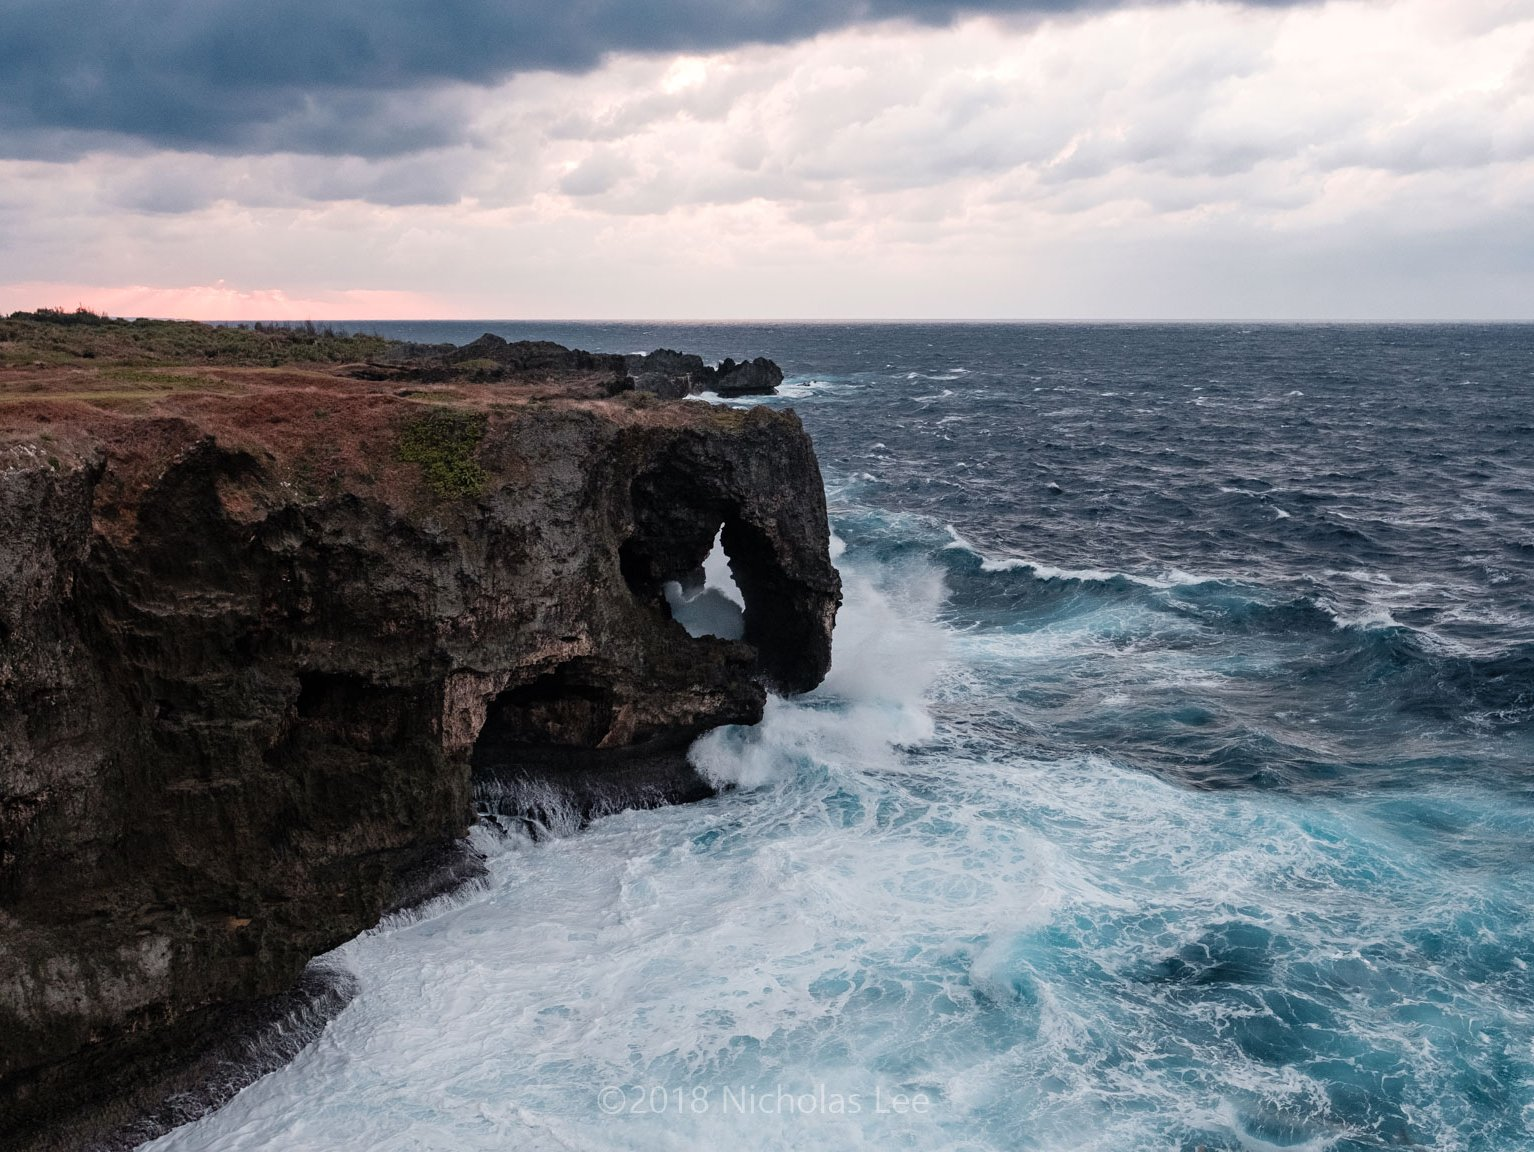 OkinawaMain island (7 days) - Nicholas visited Okinawa main island for 1 week in Jan 2018. His itinerary included sights/food recommendations, design of driving route,and booking of rental car, accommodation in Okinawa mainland. He is an amazing photographer. Check out his photos here!